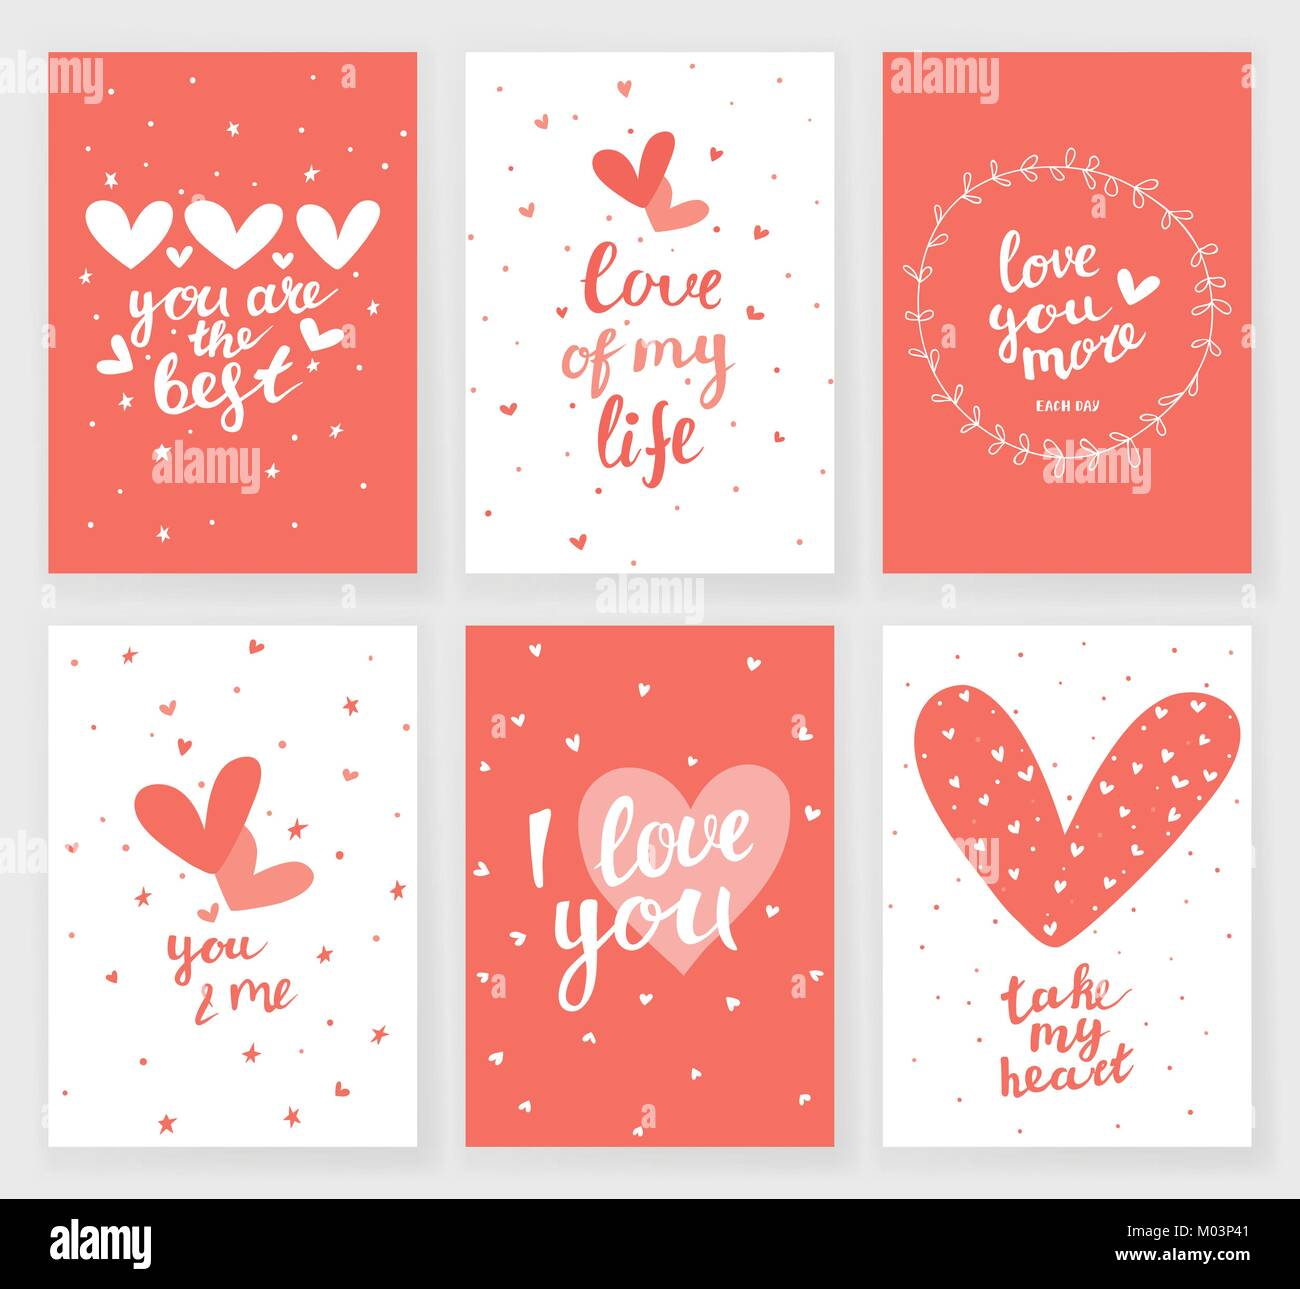 Set Of 6 Valentines Day Greeting Cards With Hearts And Hand Written